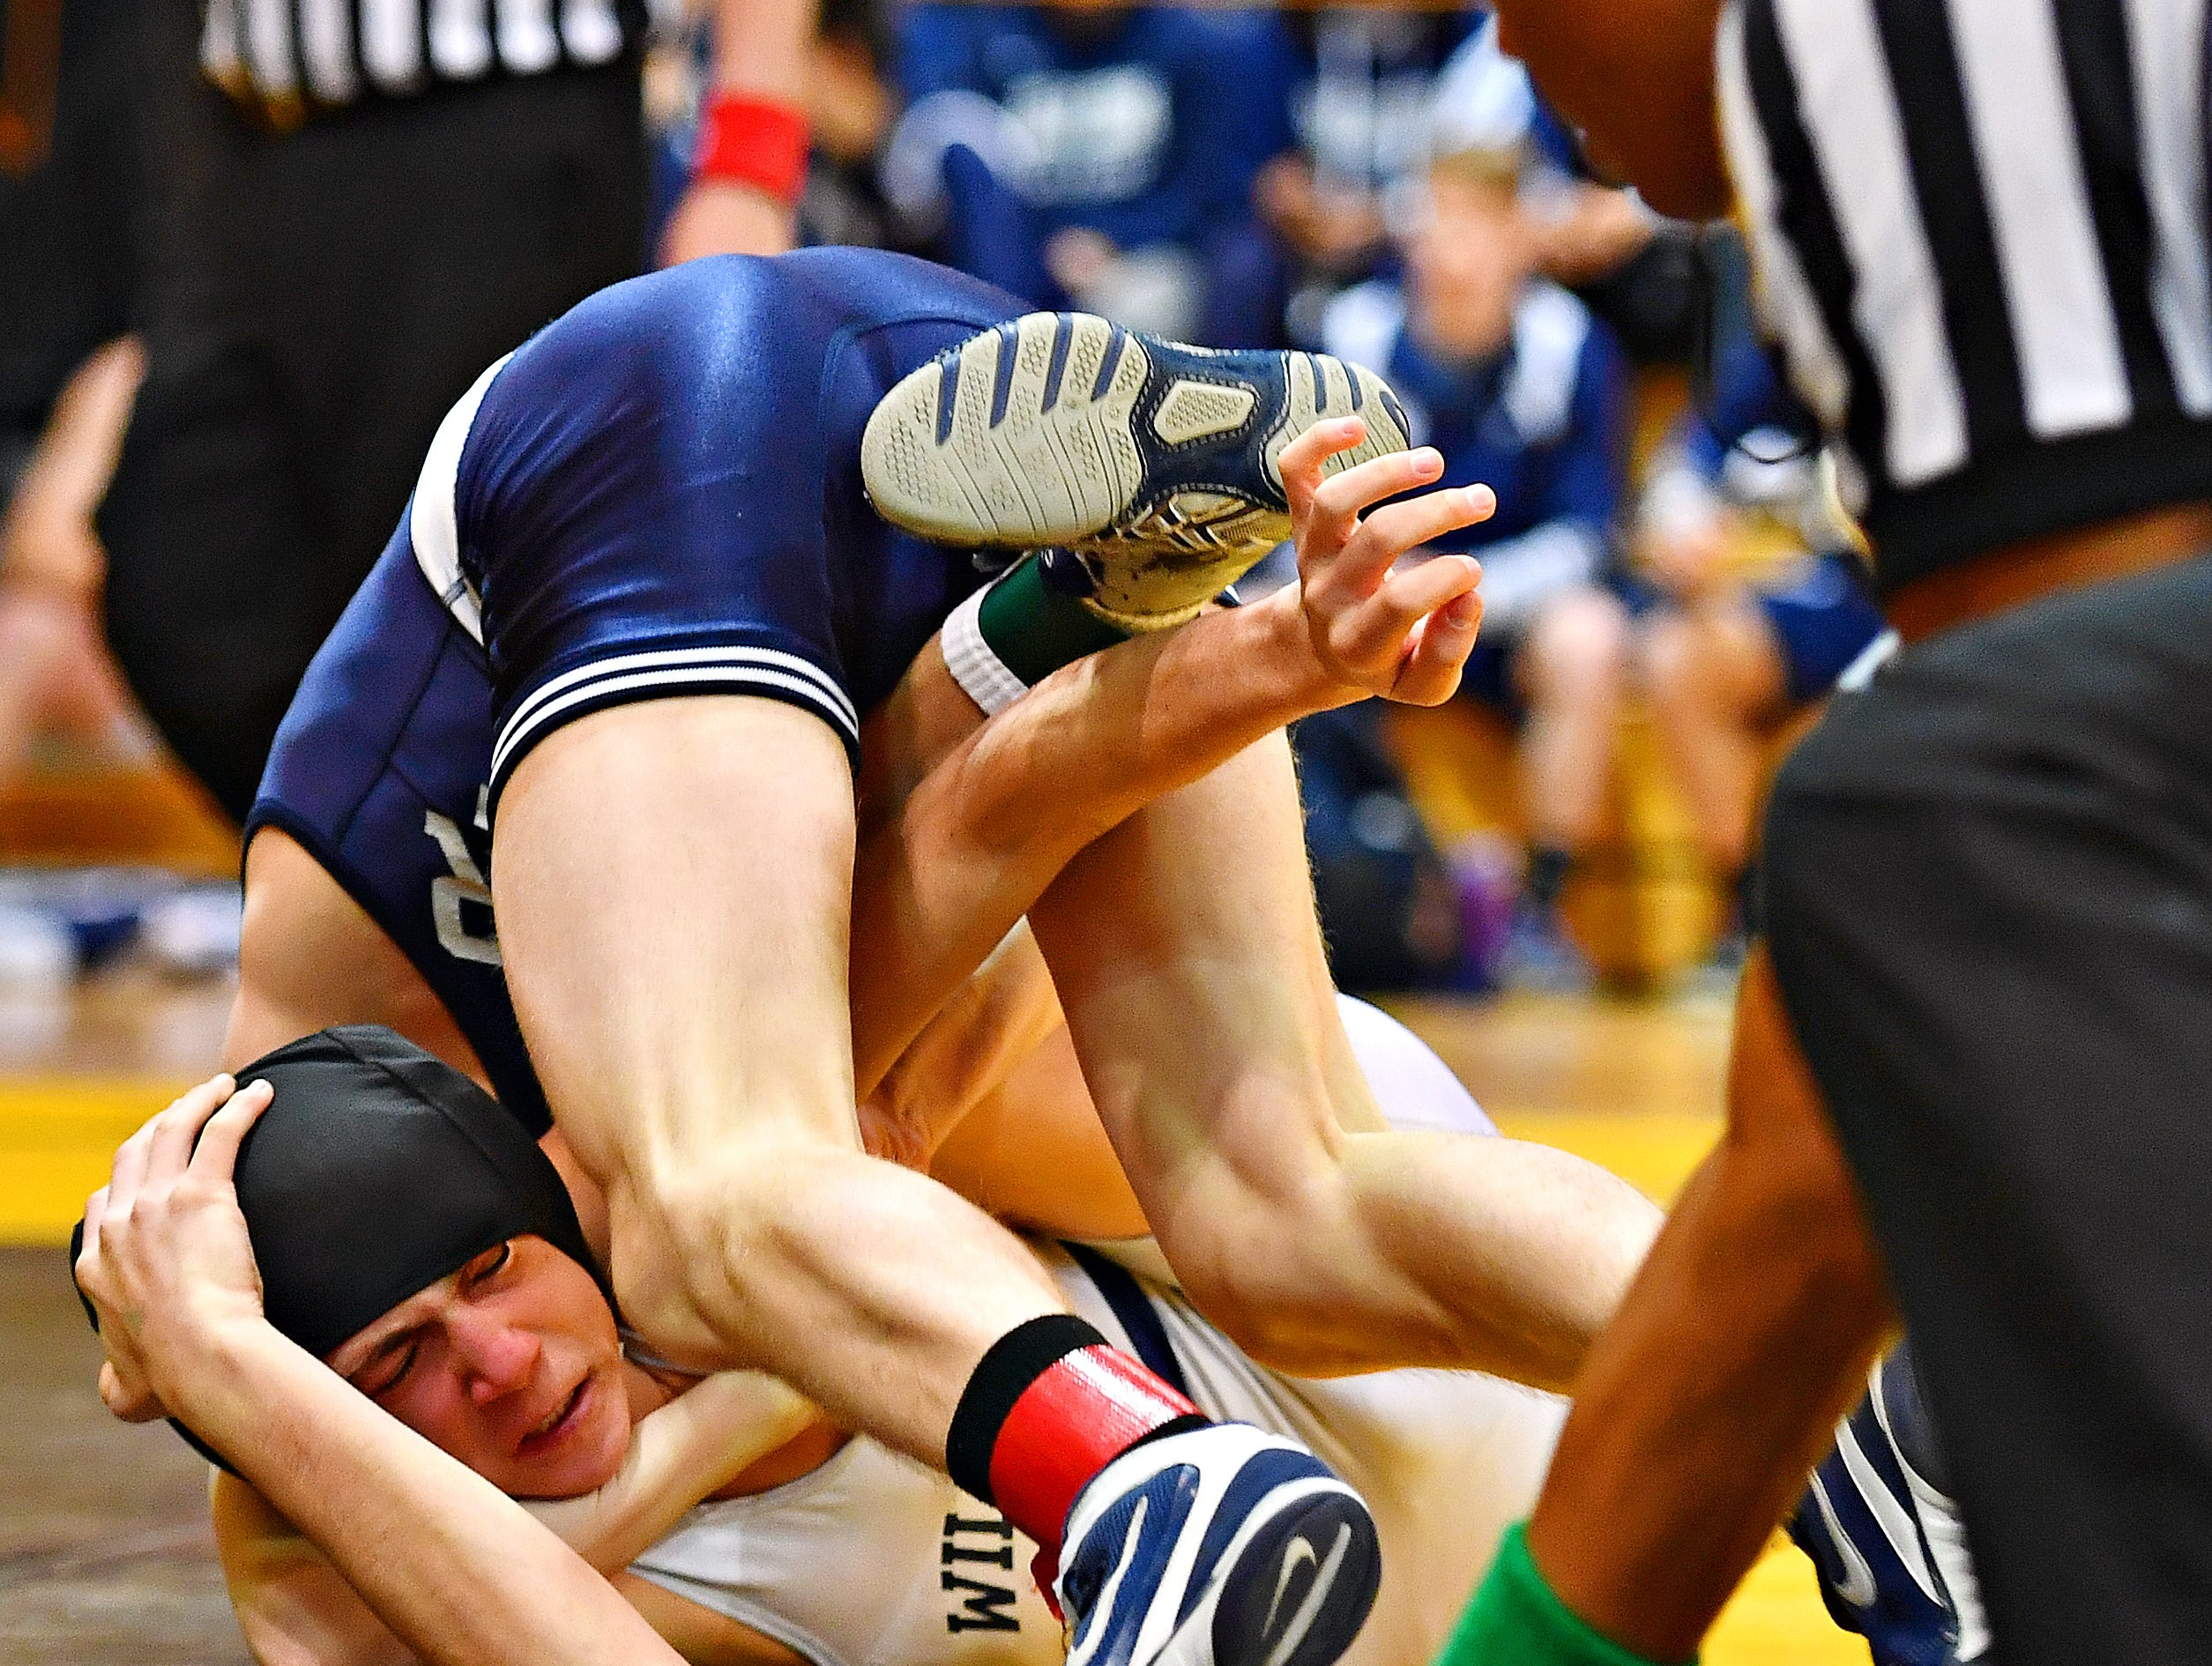 Dallastown's Adam Karlie, lower left, wrestles Cedar Cliff's Cole Baer in the 113 pound weight class during District 3, Class 3A wrestling championship action at Milton Hershey High School in Hershey, Saturday, Feb. 2, 2019. Dawn J. Sagert photo